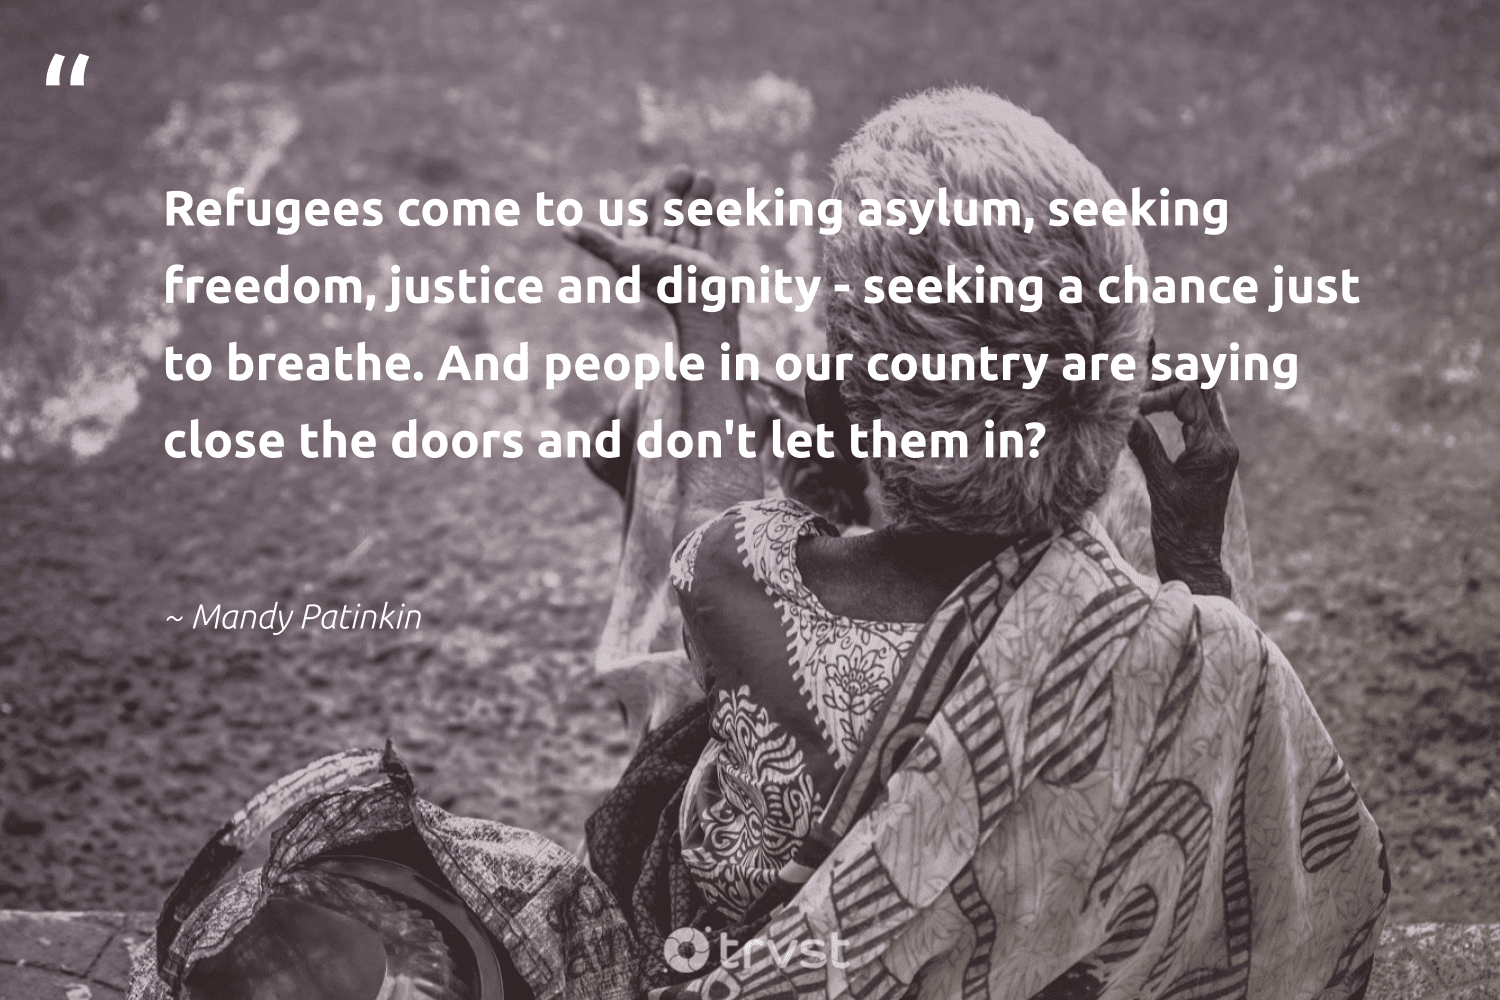 """""""Refugees come to us seeking asylum, seeking freedom, justice and dignity - seeking a chance just to breathe. And people in our country are saying close the doors and don't let them in?""""  - Mandy Patinkin #trvst #quotes #refugees #justice #freedom #refugeeswelcome #inclusion #sustainablefutures #ecoconscious #syria #equalrights #makeadifference"""